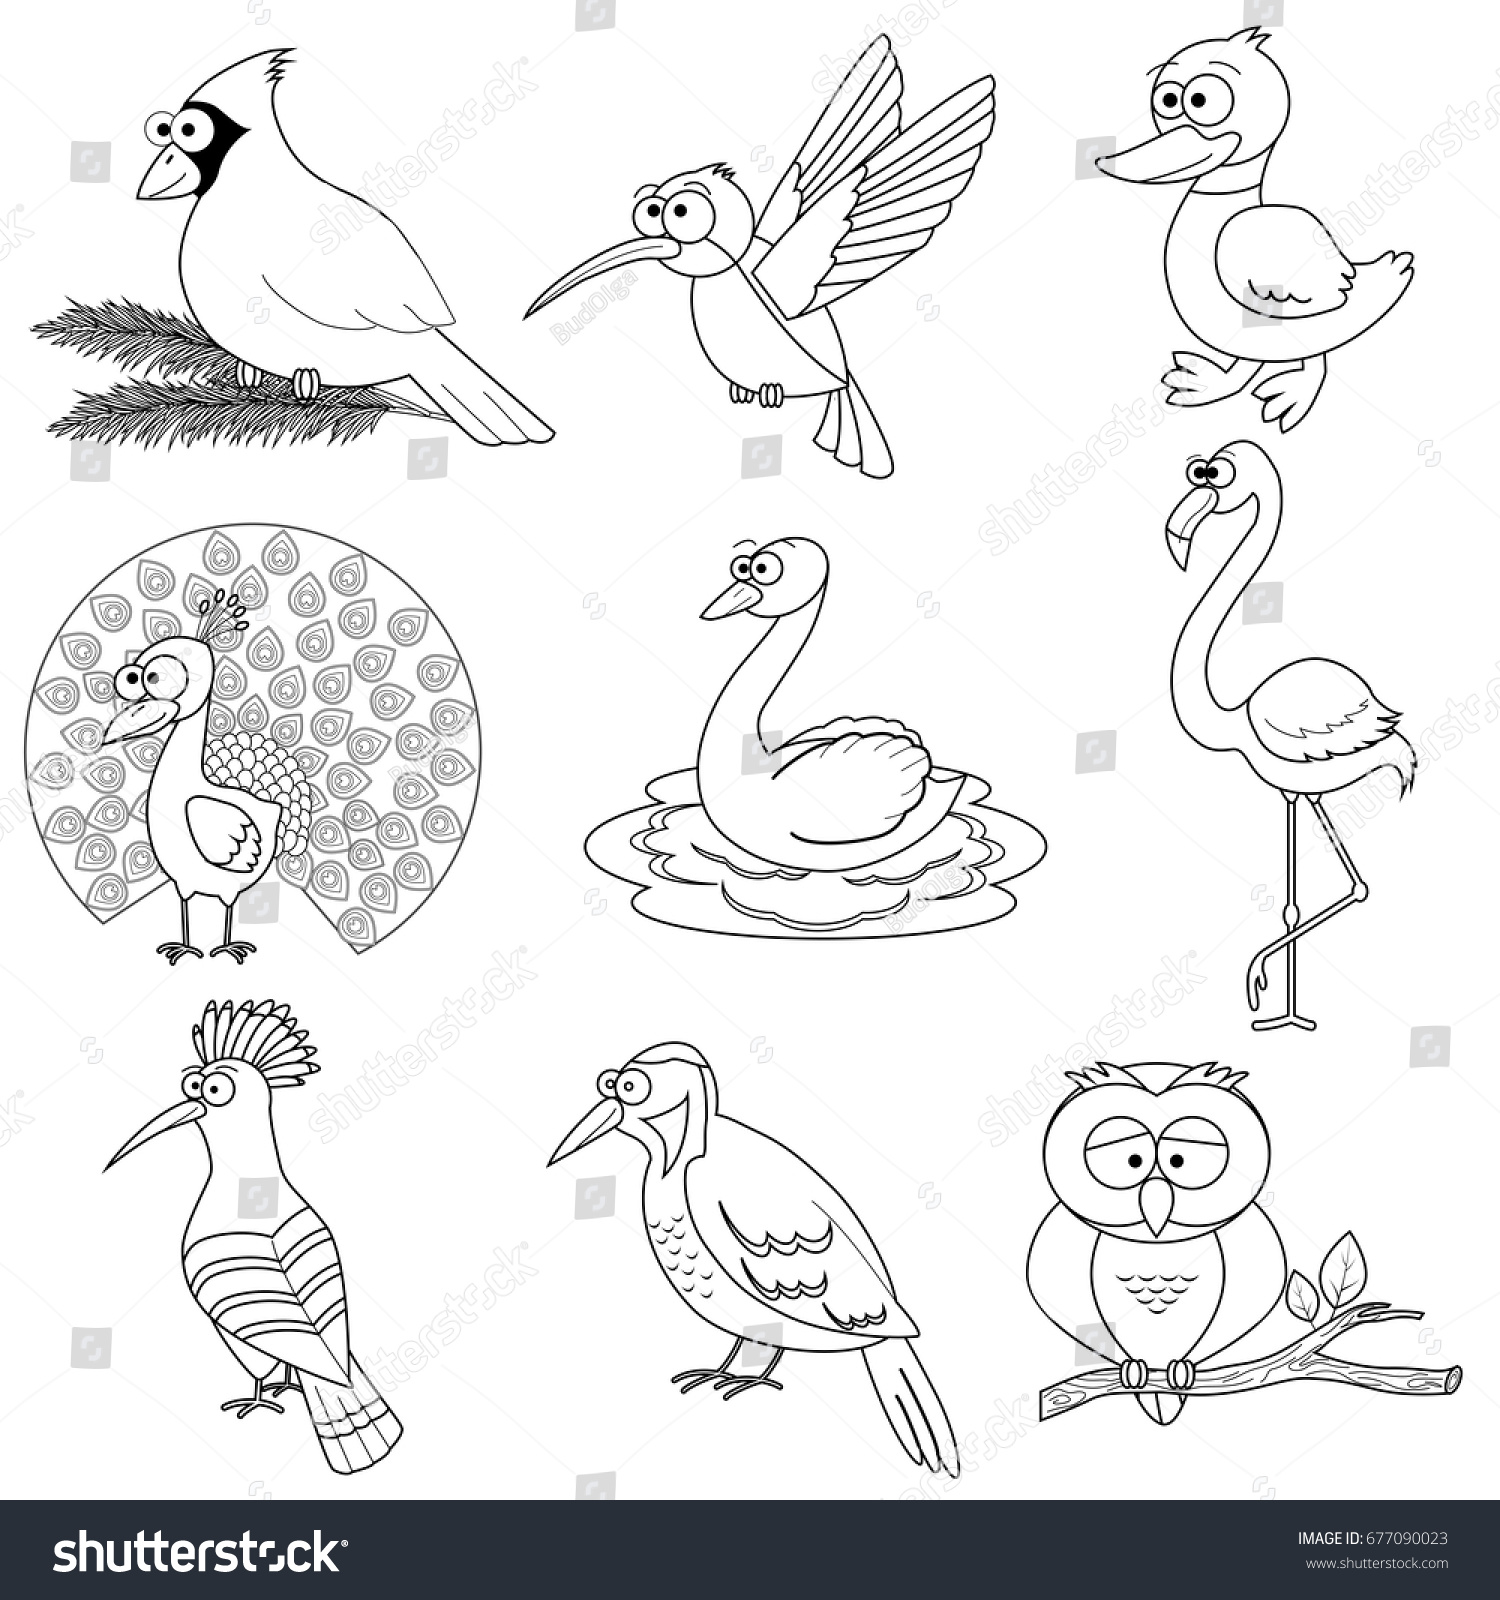 Bird Coloring Pages For Preschoolers - Coloring Home | 1600x1500